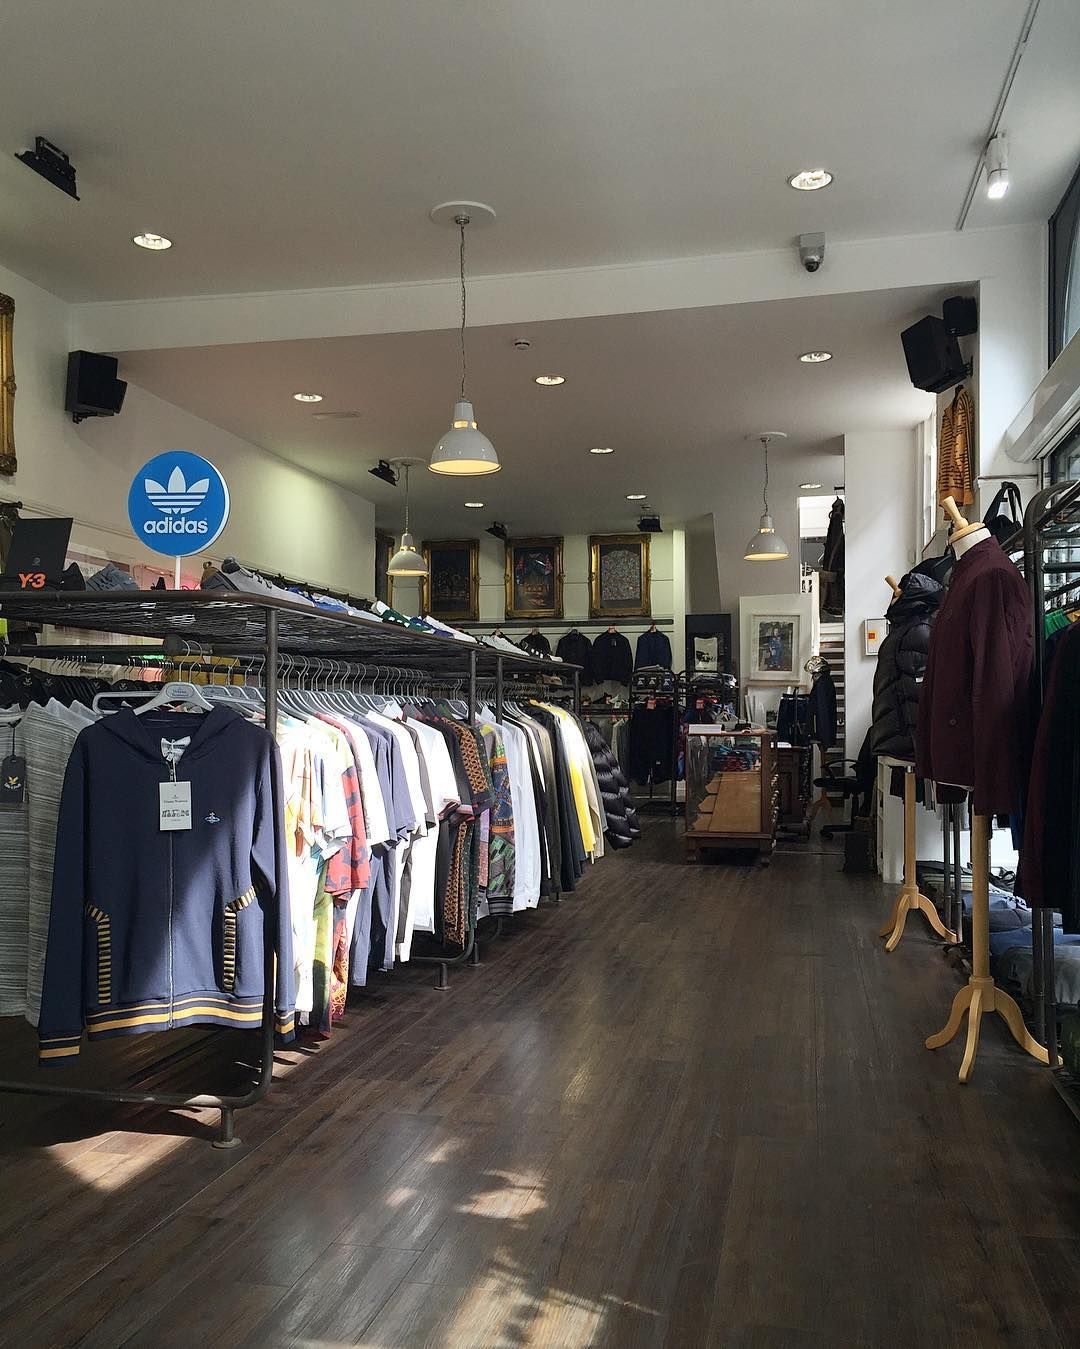 A very good Monday morning to you - we are open until 5.30pm today so swing by and see what we have to offer. Brand new collections from Moncler Westwood Y-3 adidas Originals Pretty Green Lyle & Scott and Fred Perry amongst others alongside some cracking sale bargains from our summer sale.  #newarrivals #AW16 #sale #summersale #philipbrownemenswear